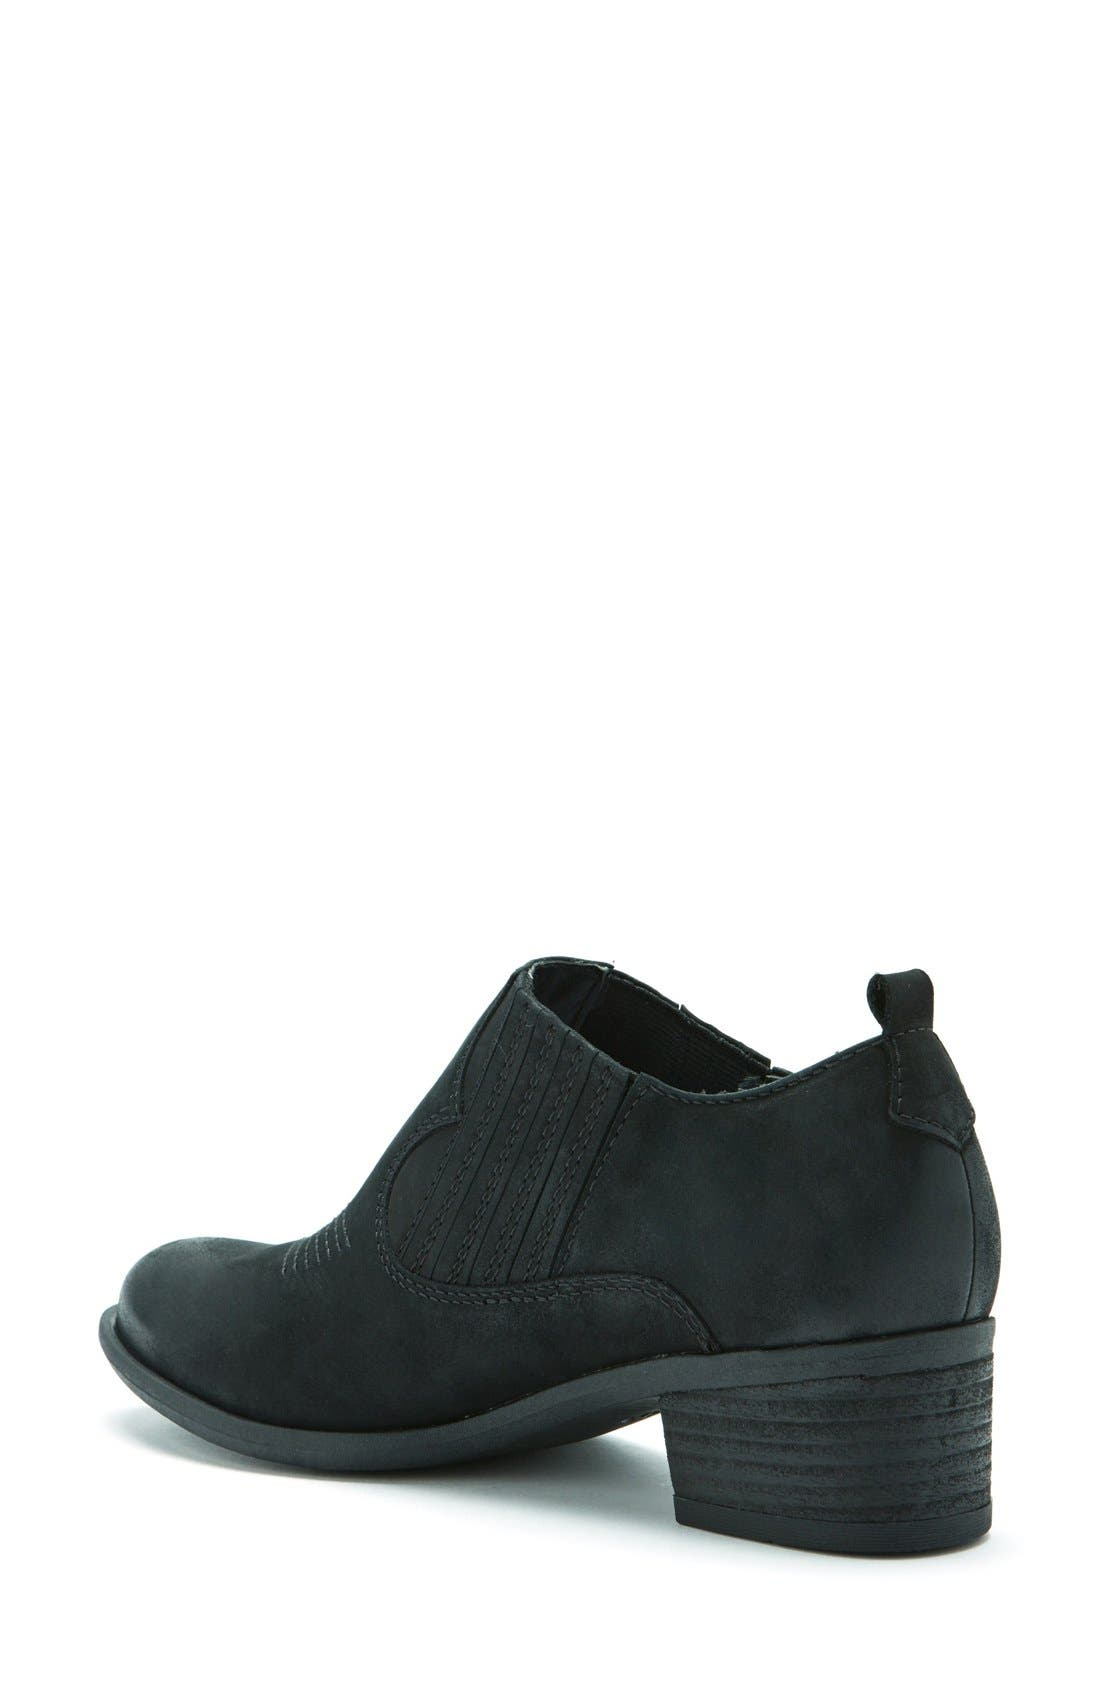 Maddox Waterproof Western Bootie,                             Alternate thumbnail 2, color,                             Black Leather